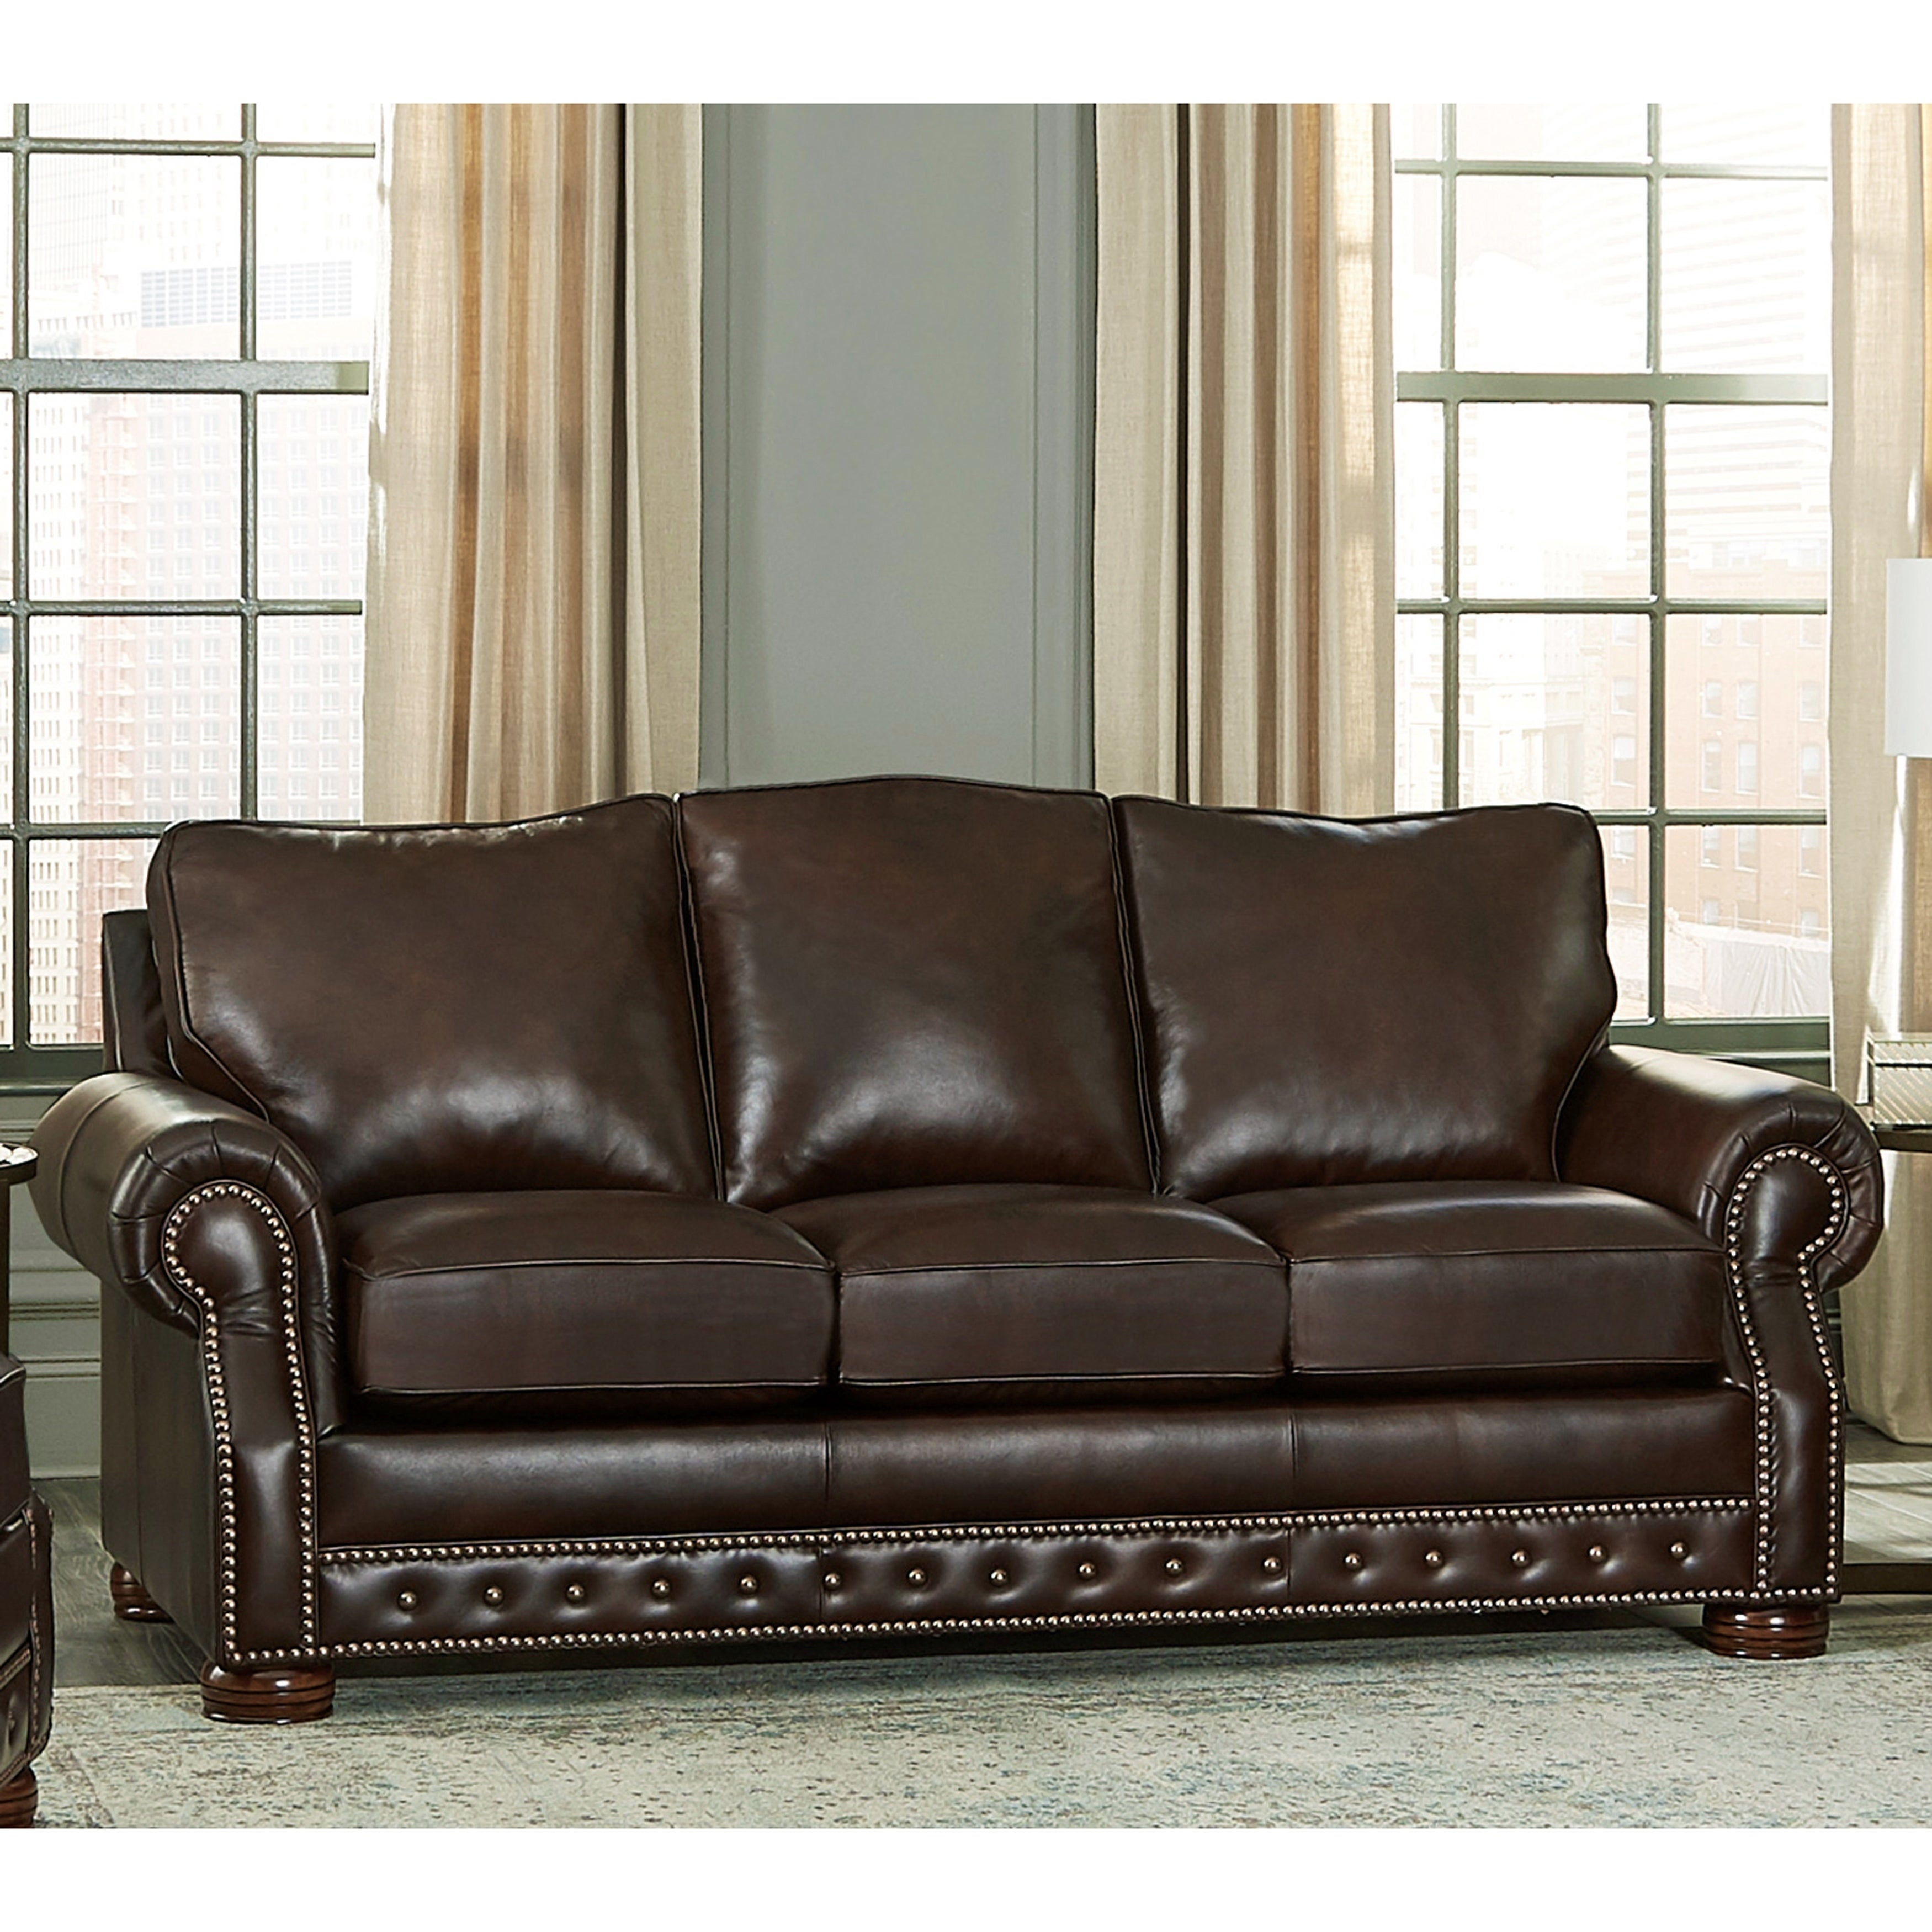 Usa Porto Top Grain Leather Sofa Bed